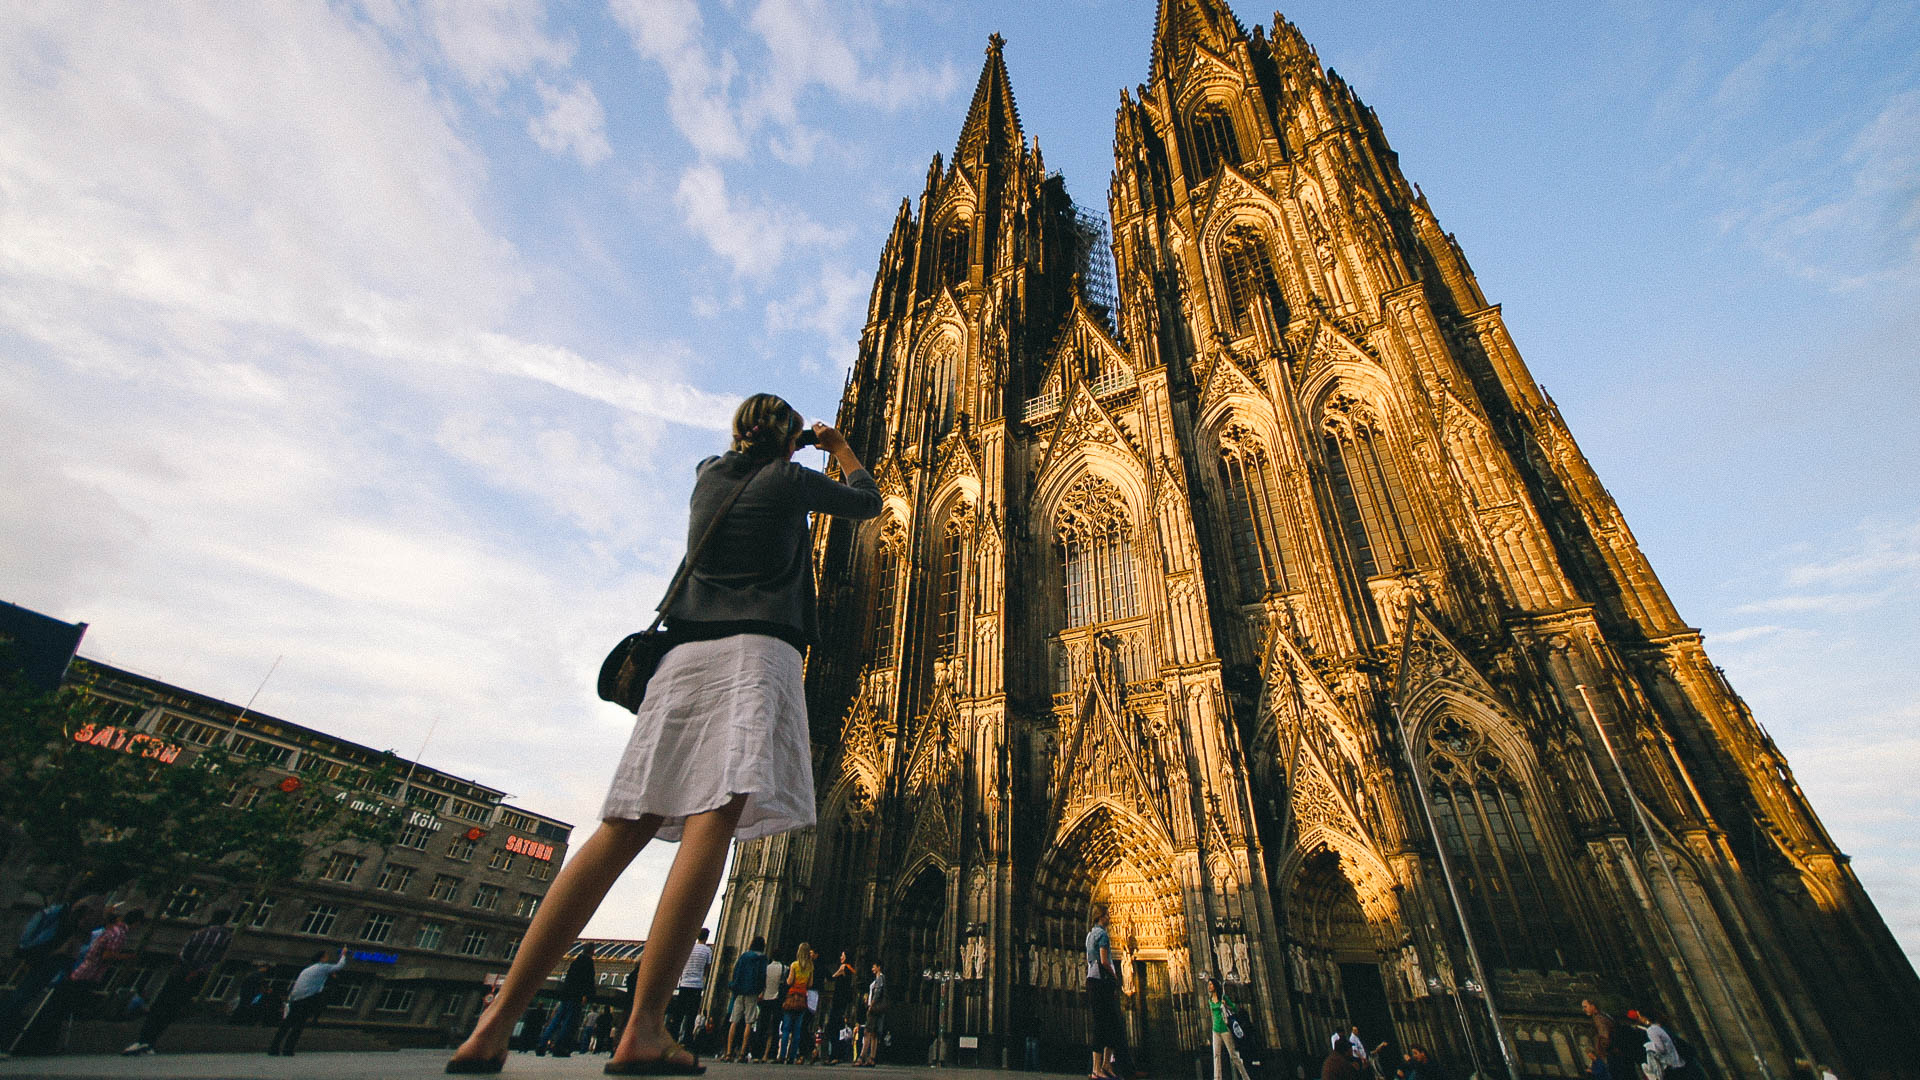 Cologne, Germany|klyuen travel photography